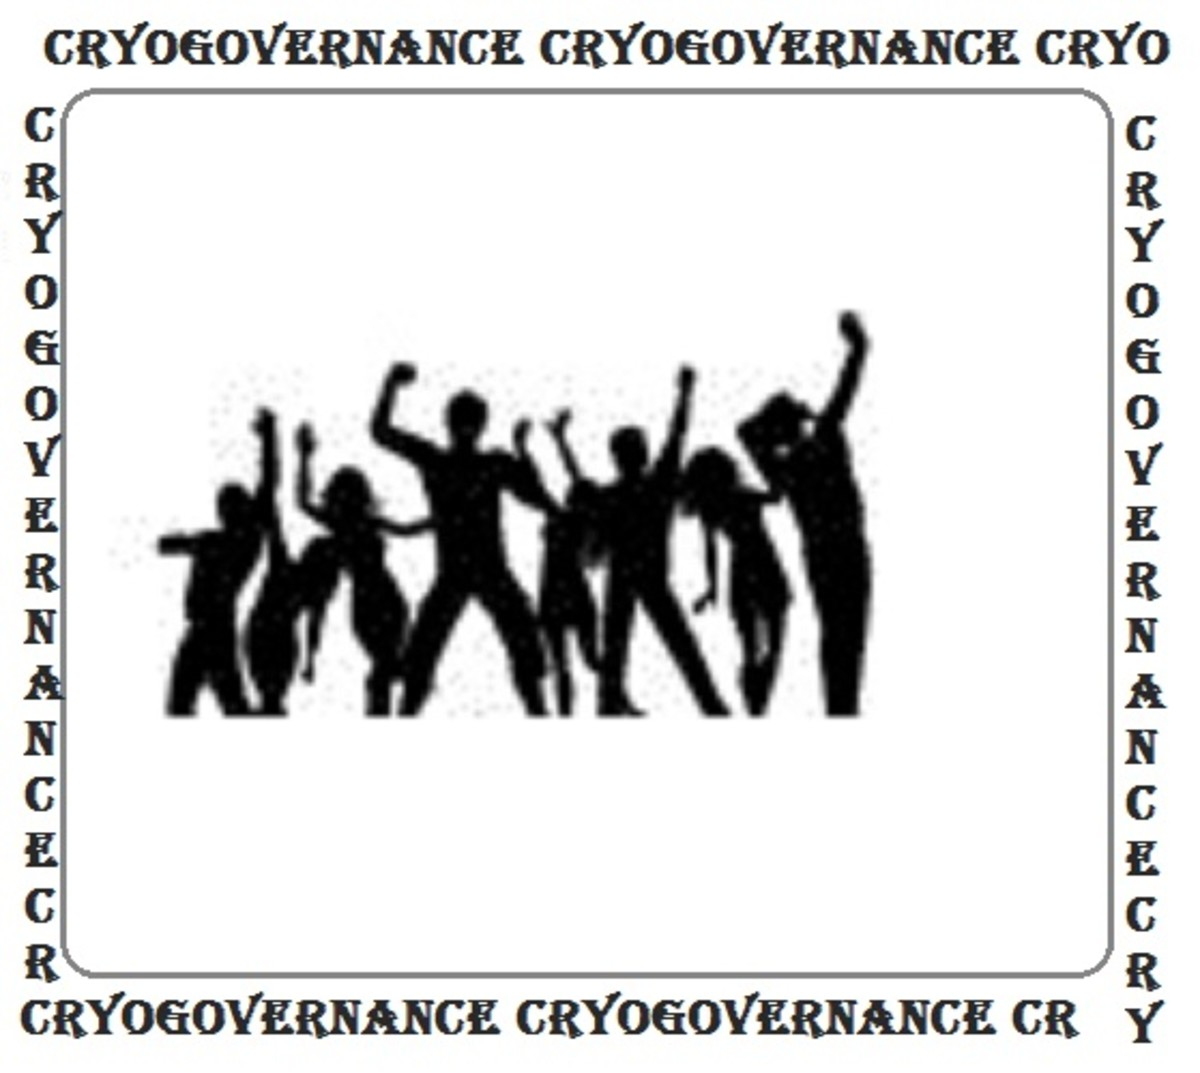 cryogovernance-the-state-of-the-future